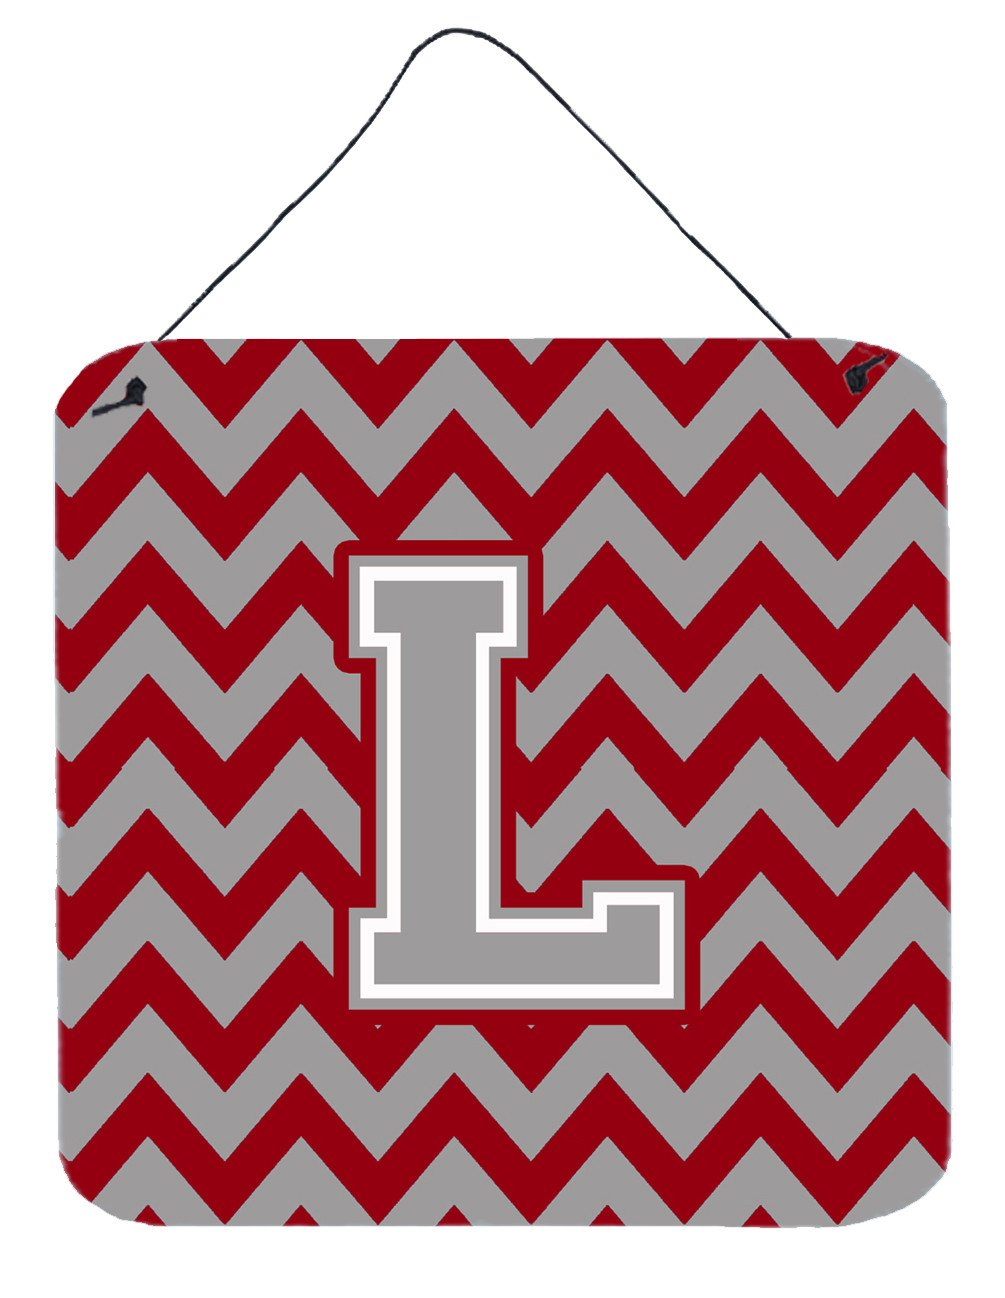 Letter L Chevron Crimson and Grey   Wall or Door Hanging Prints CJ1043-LDS66 by Caroline's Treasures